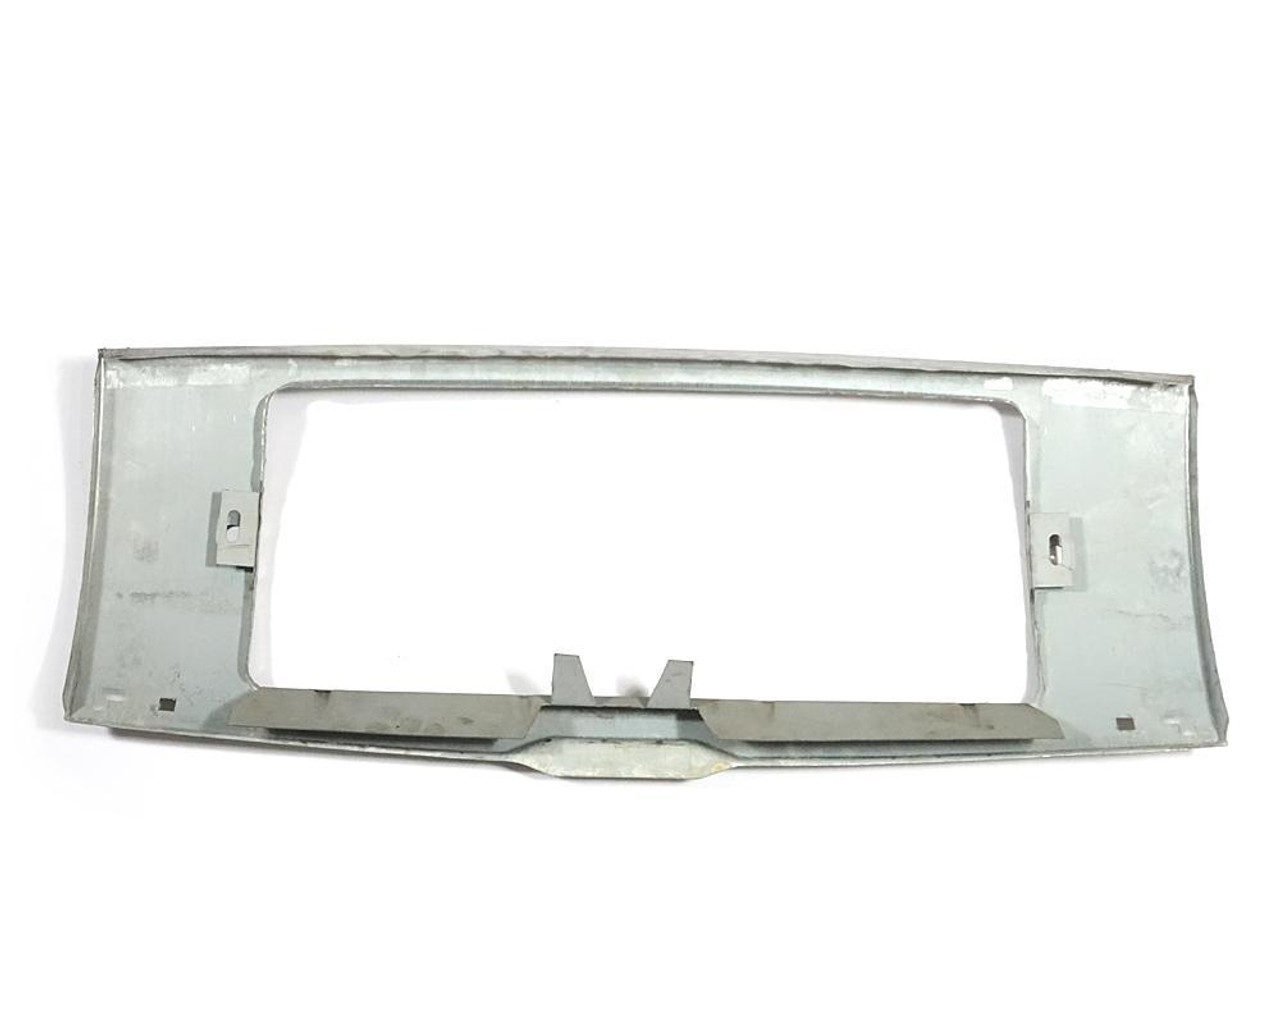 OEM Front Lower Valance - 1979-85